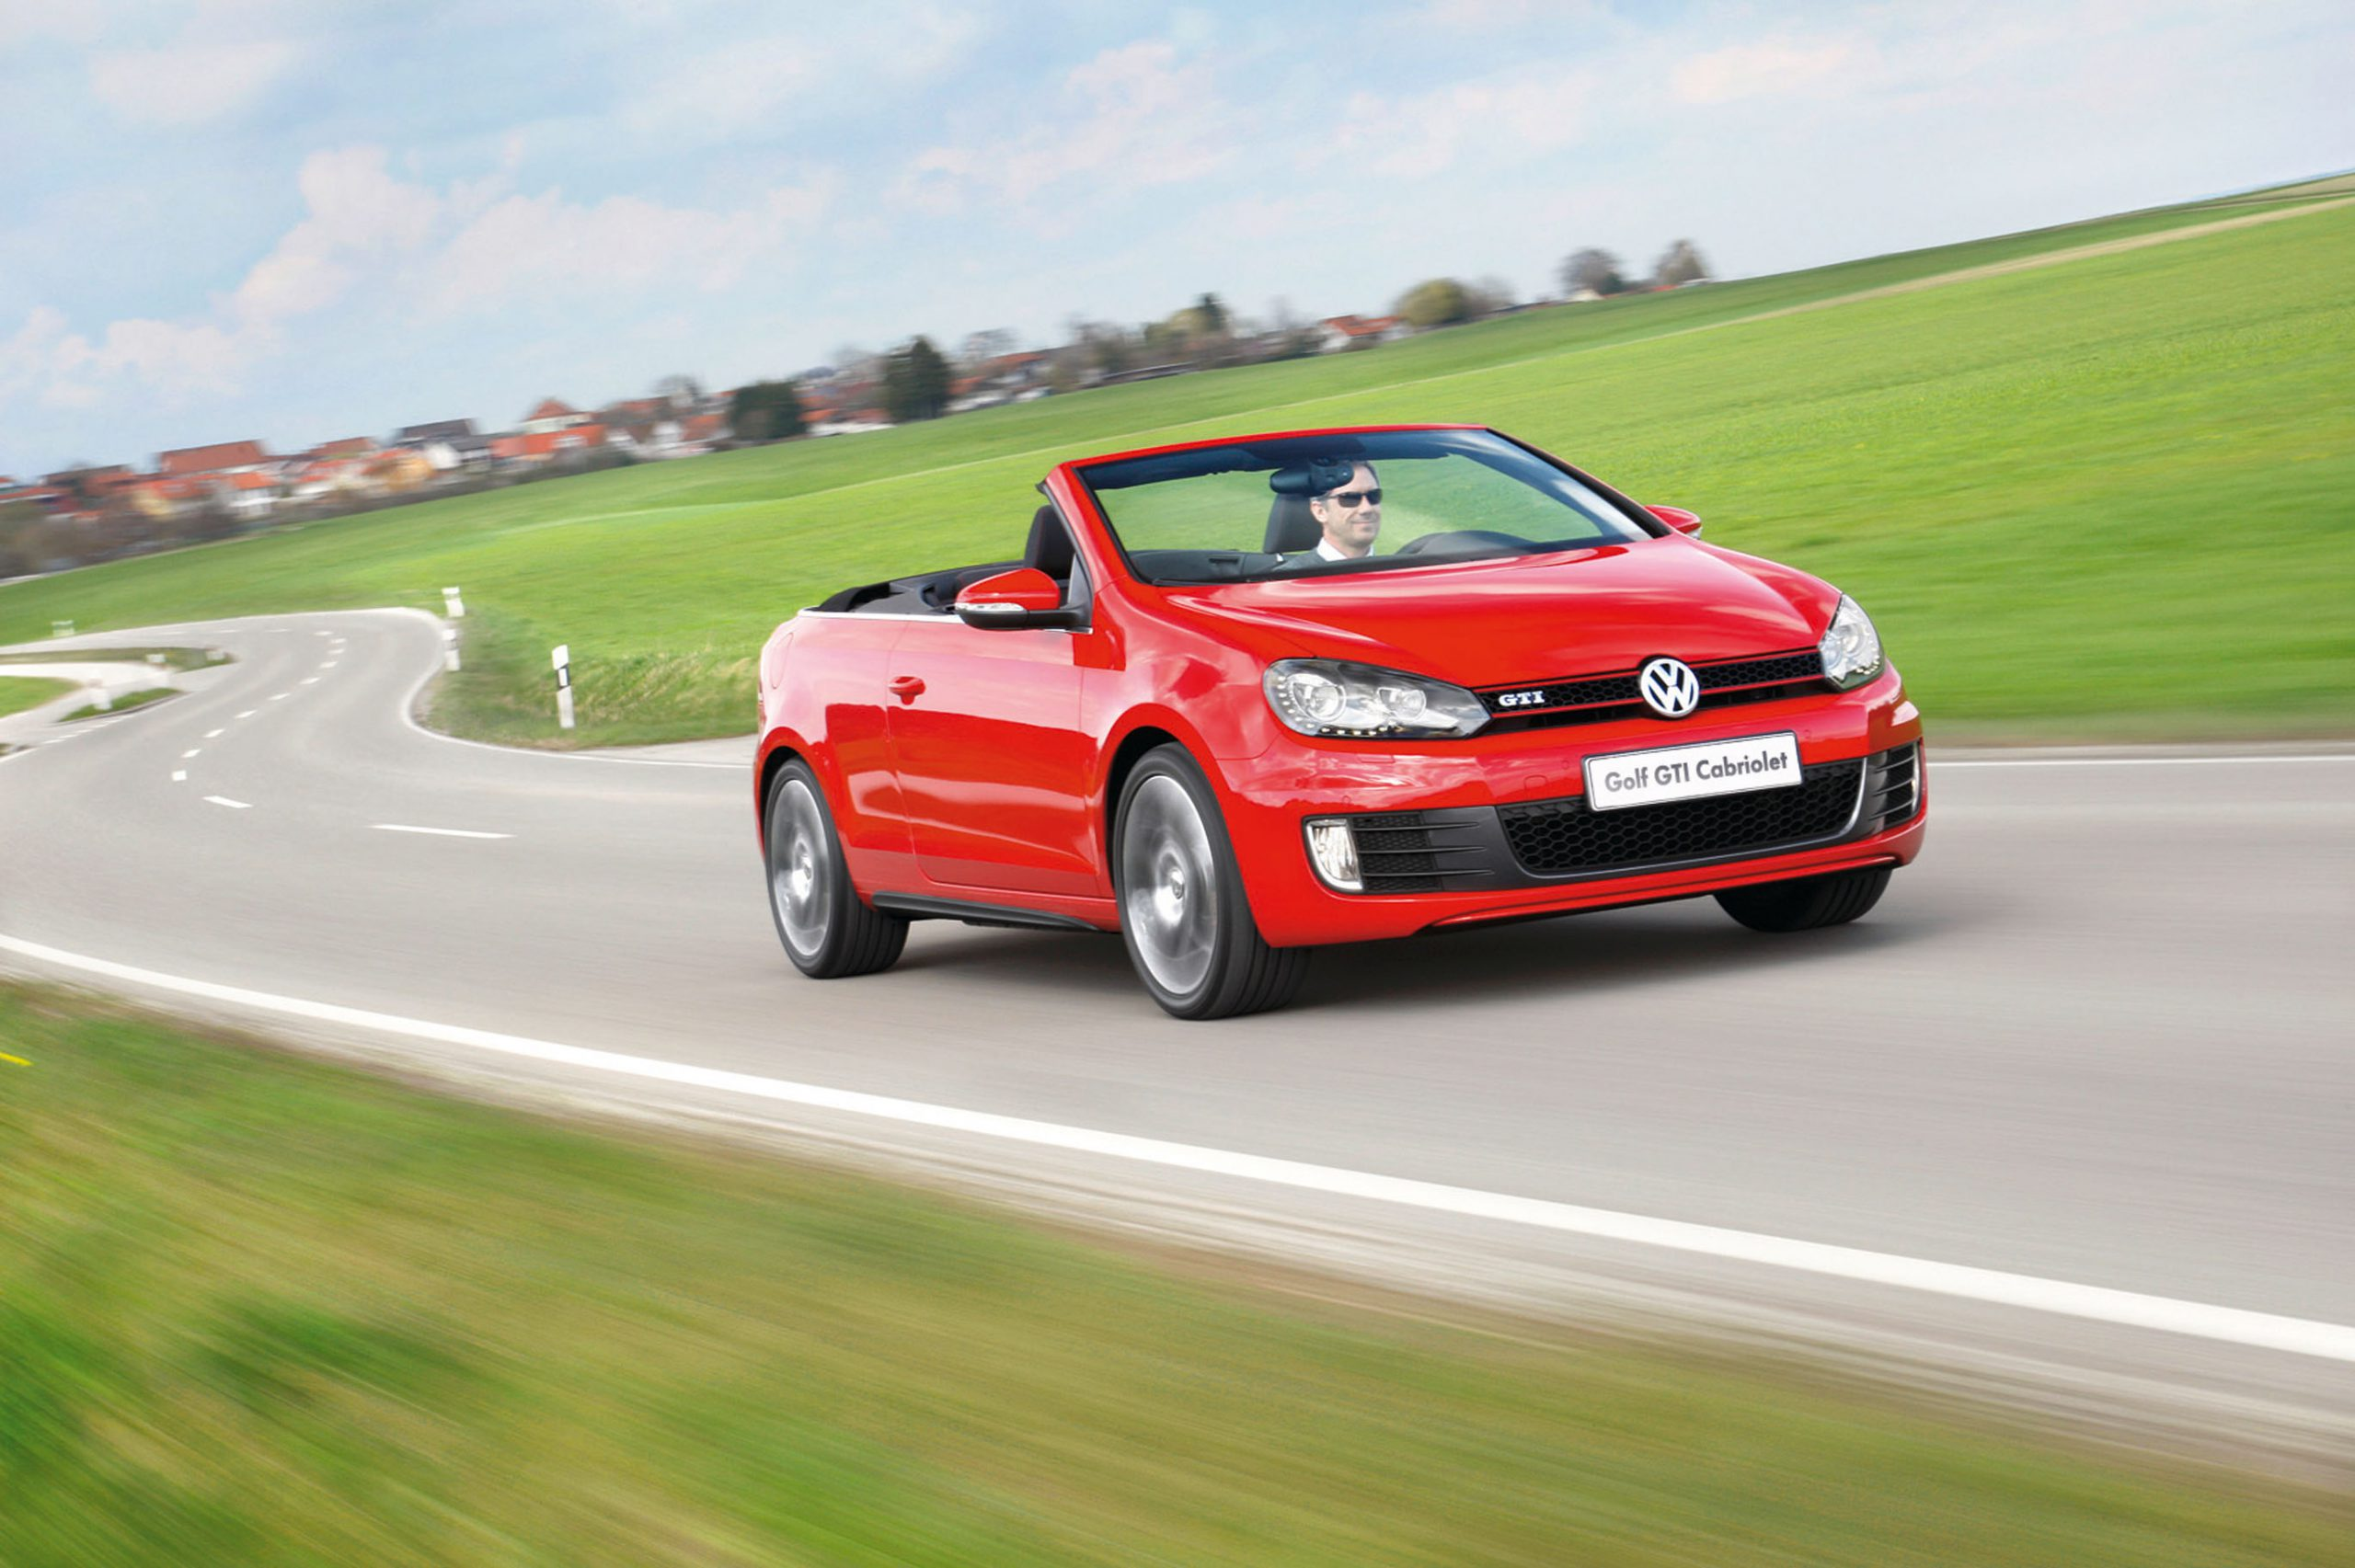 Volkswagen Golf 6 GTI Cabriolet (2013): New Car Review – Surf4cars